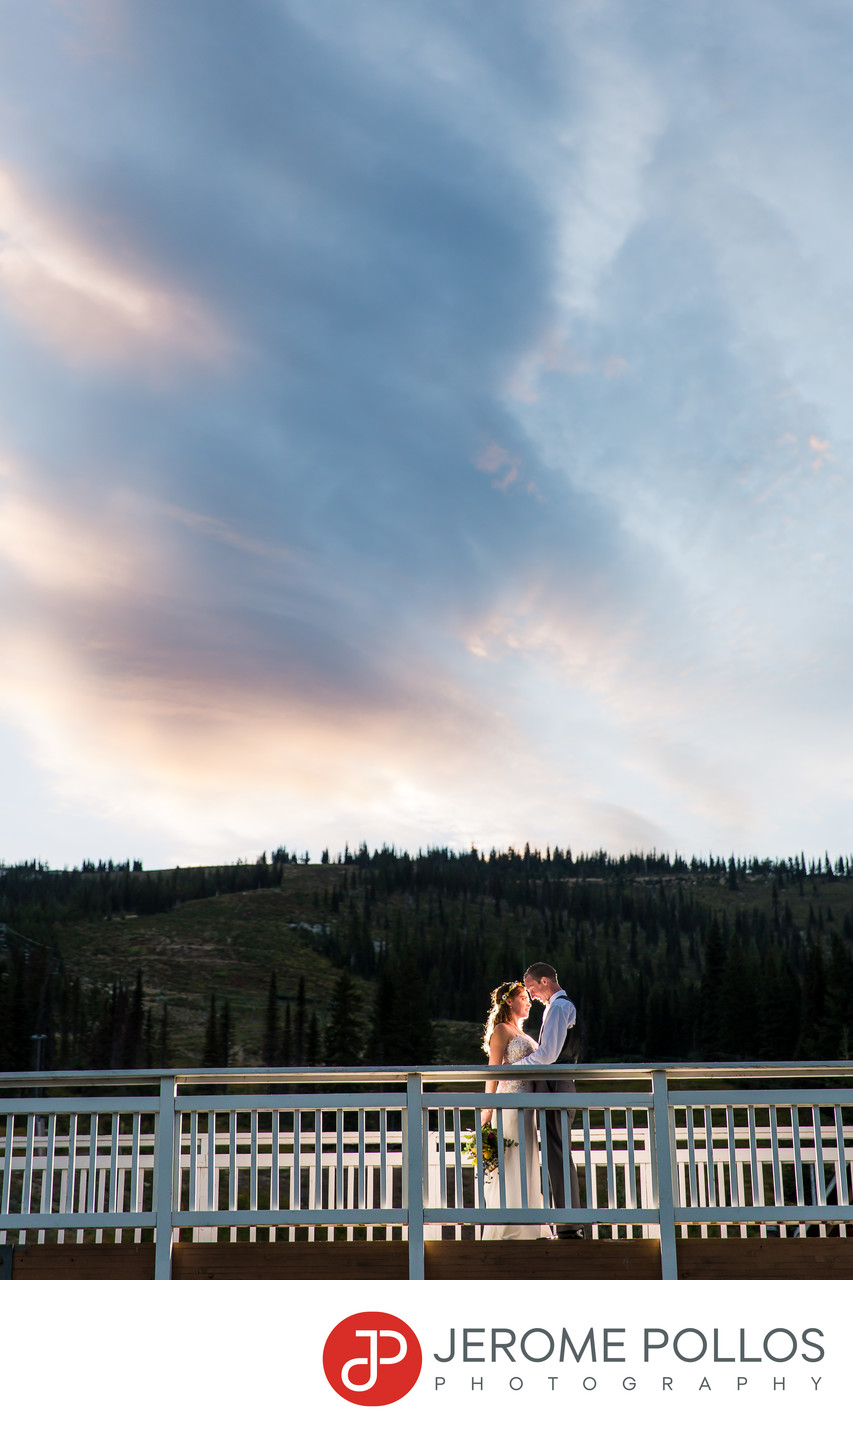 Schweitzer Wedding Bride Groom Bridge Kiss At Sunset